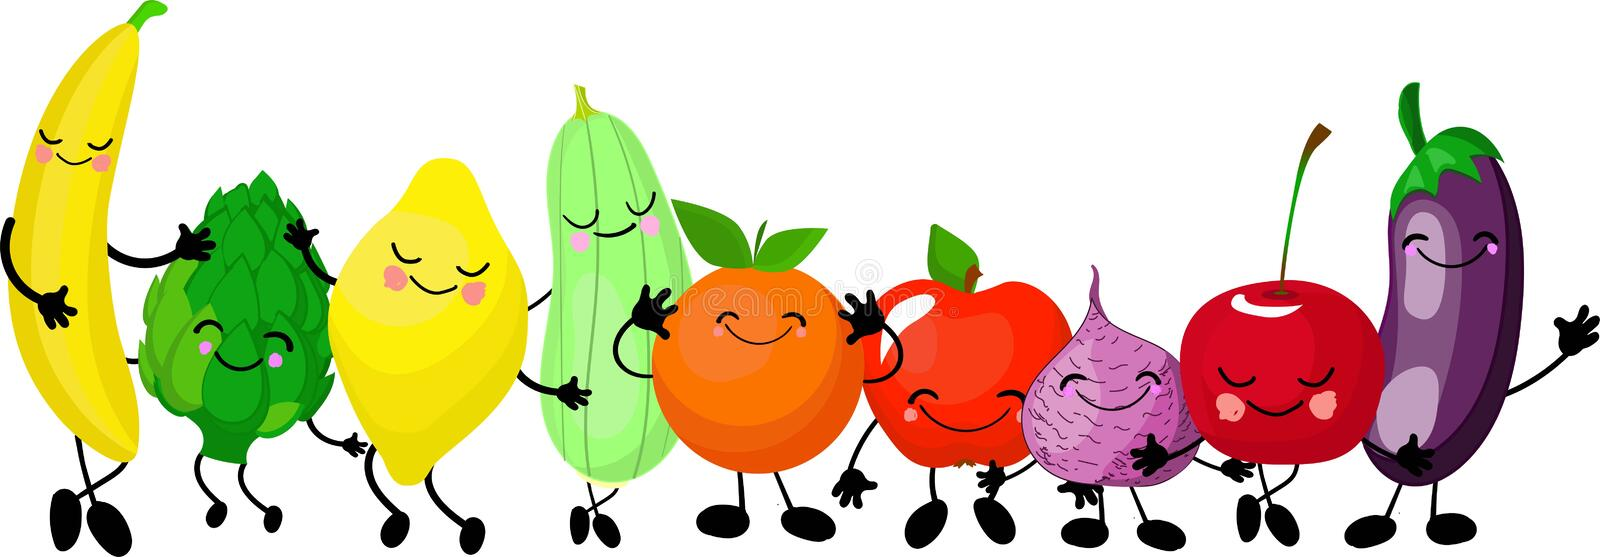 Very adorable fruits and vegetables. Big collection. characters gesturing and waving their hands. Smiling fruits isolated on the royalty free illustration